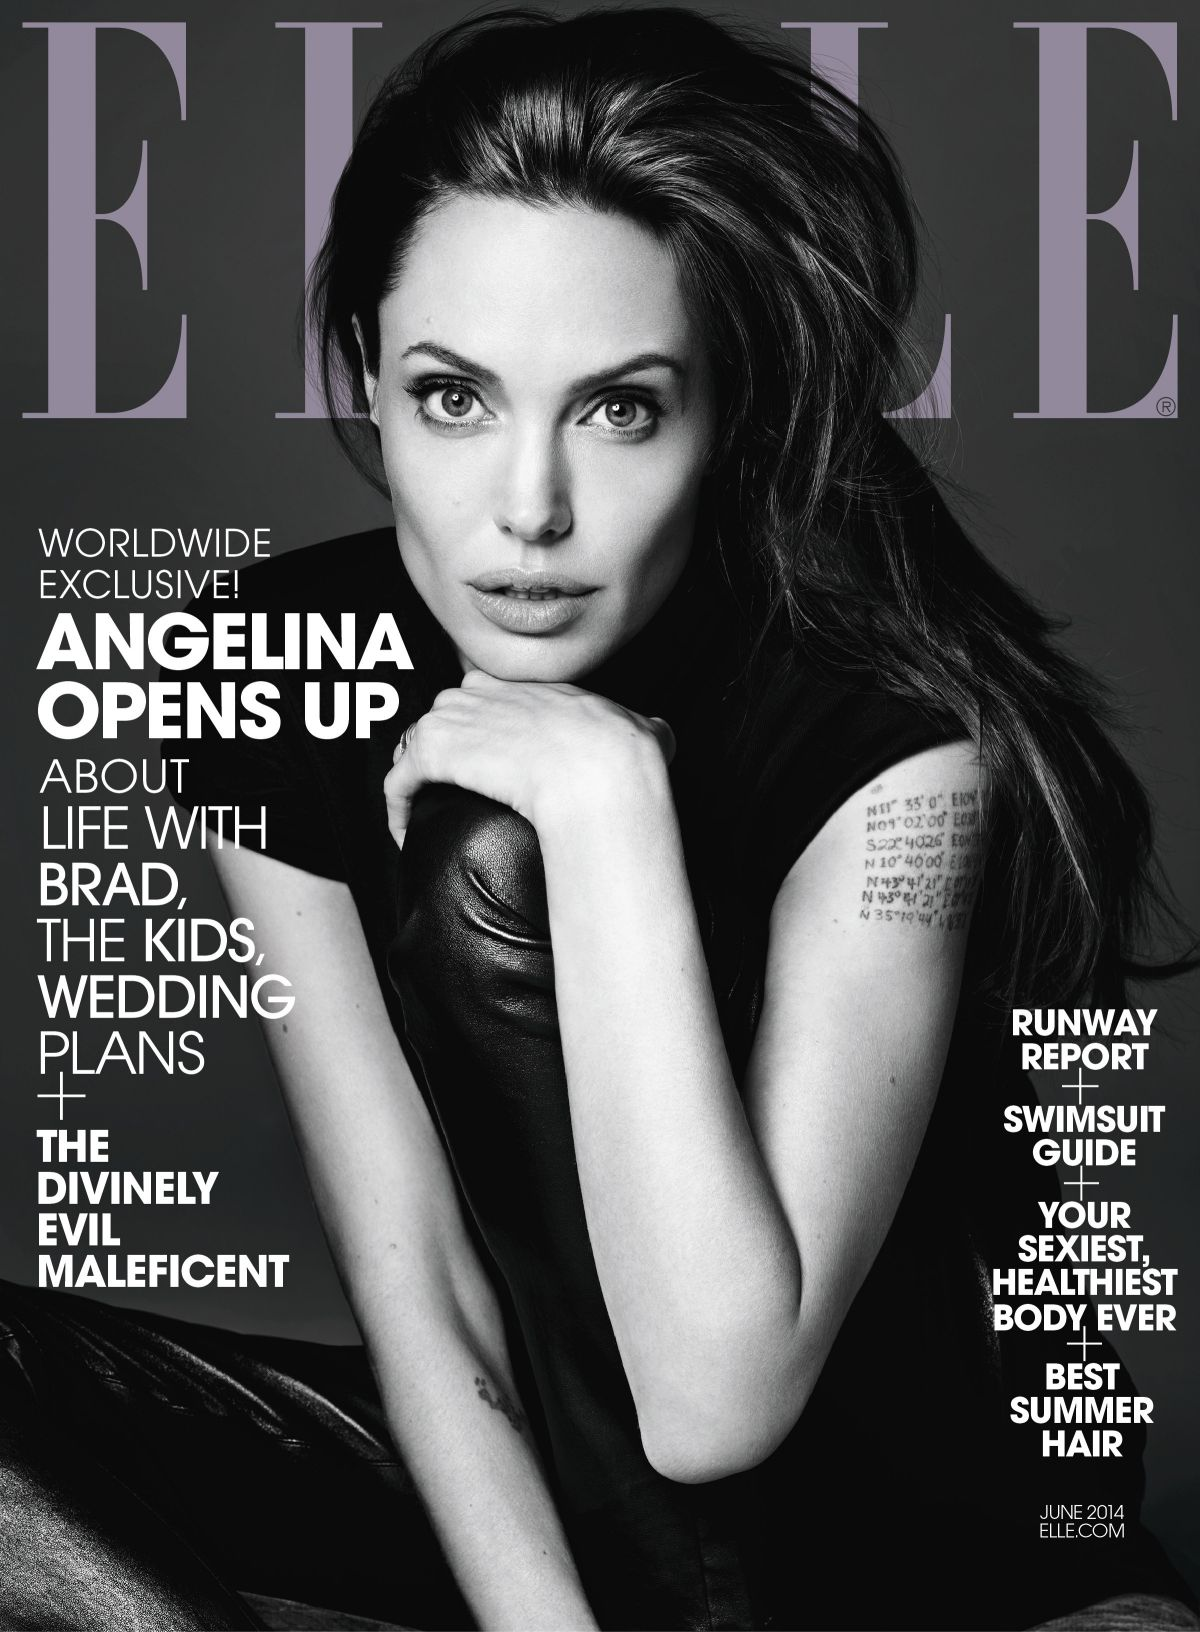 ANGELINA JOLIE in Elle Magazine, June 2014 Issue